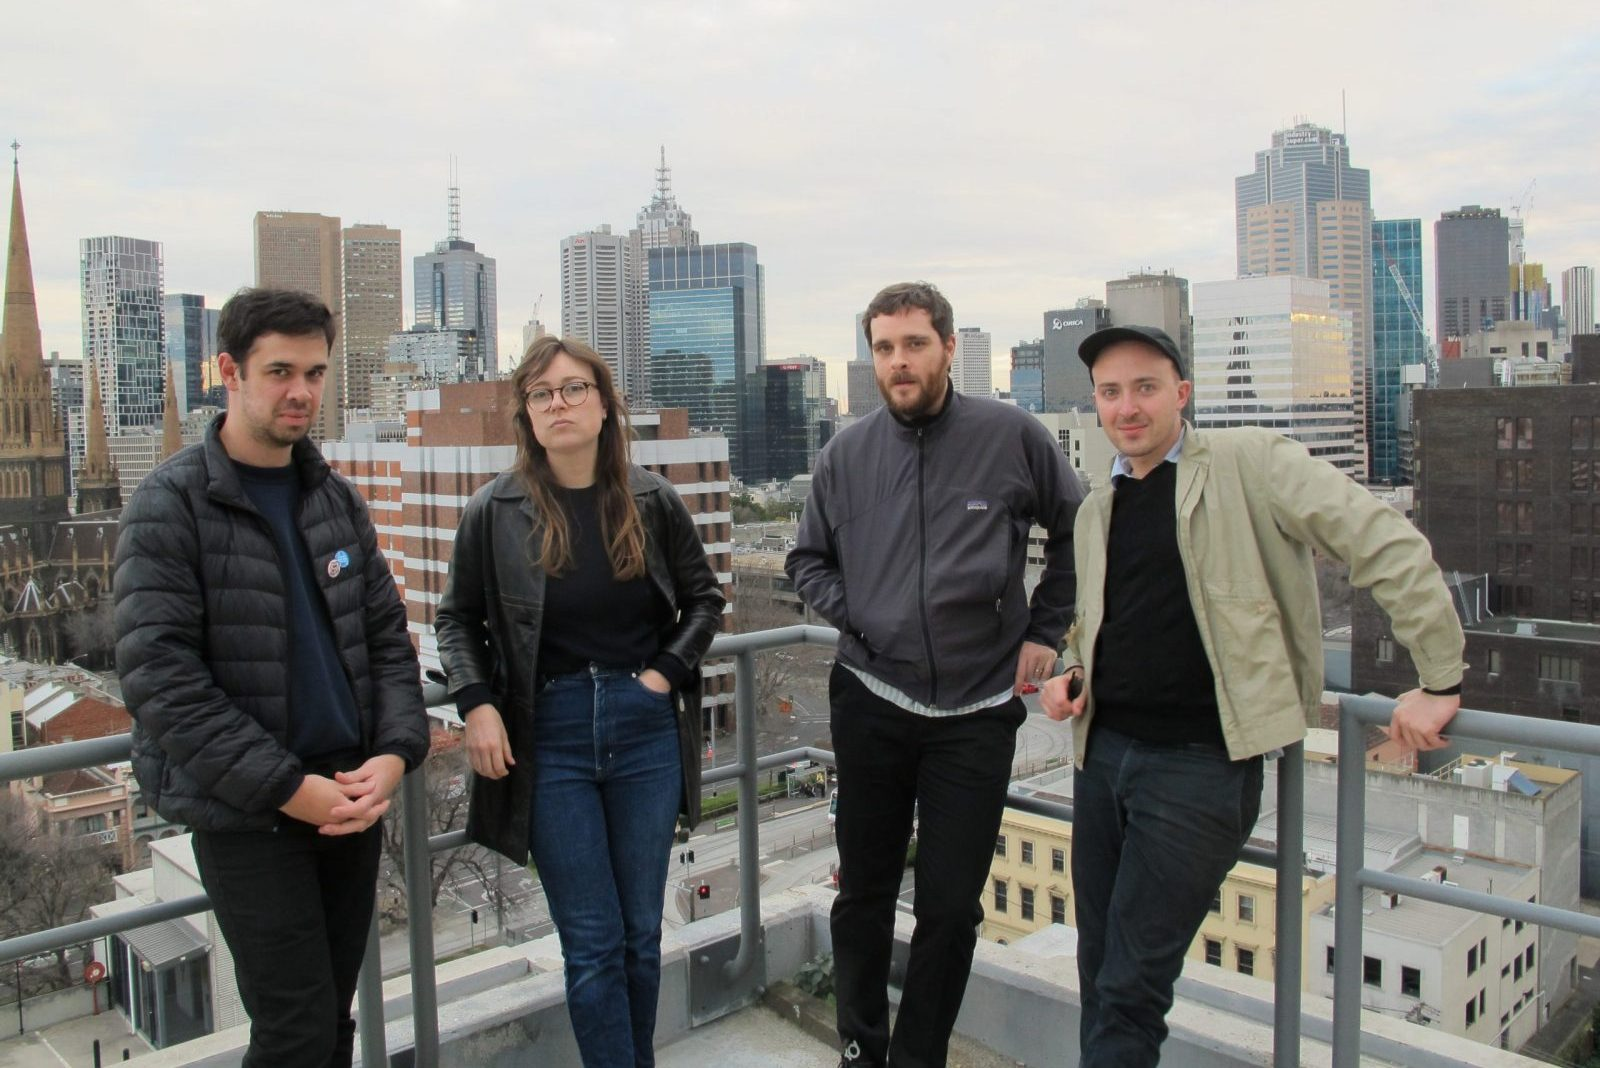 Beloved Melbourne label Anti Fade are bringing two nights of punk to Max Watt's